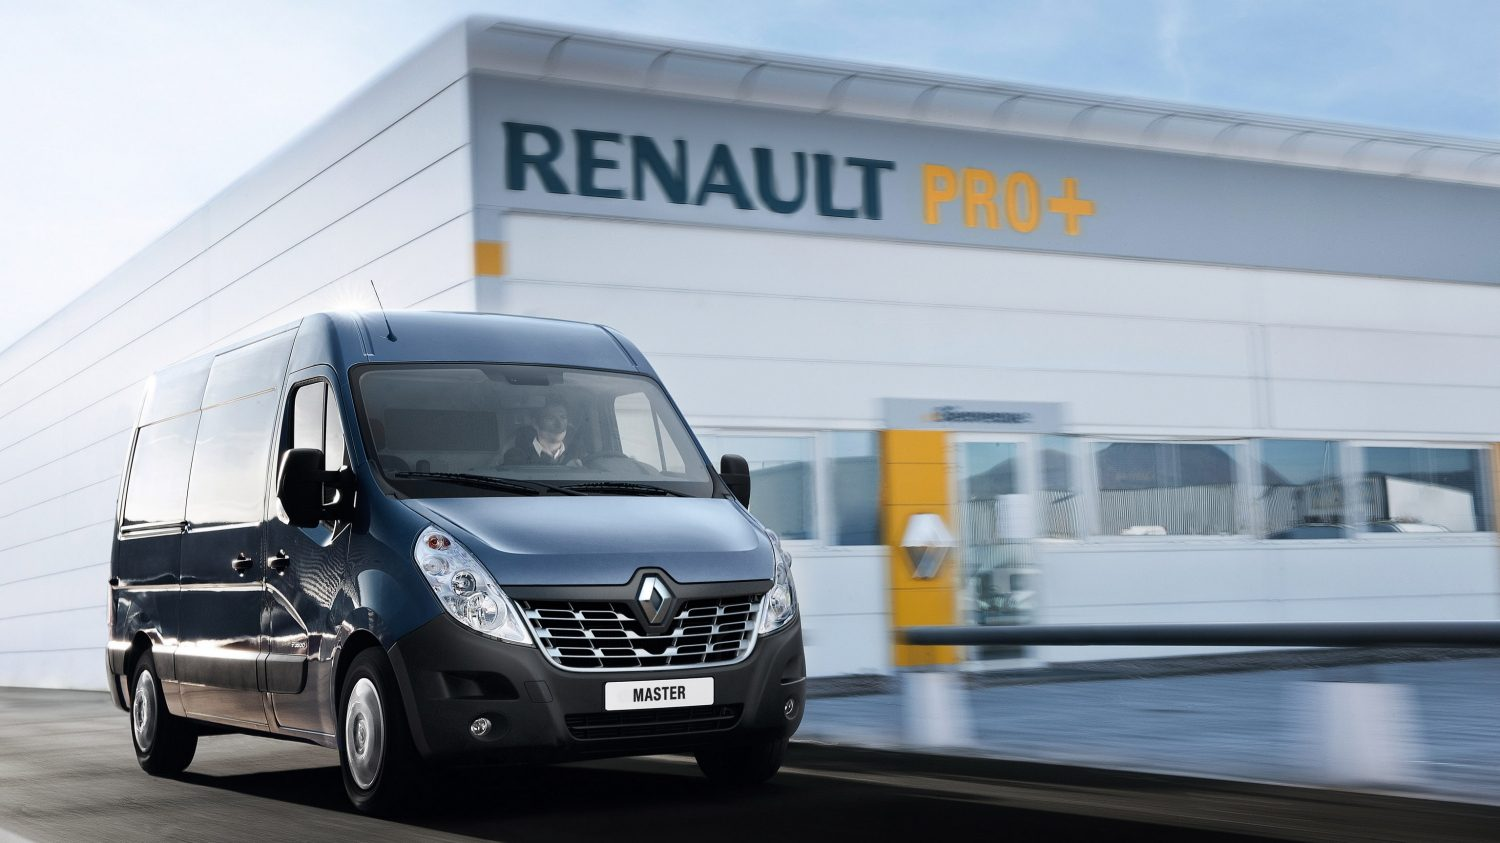 renault-professionnels-renaultpro-plus.jpg.ximg.l_full_m.smart.jpg